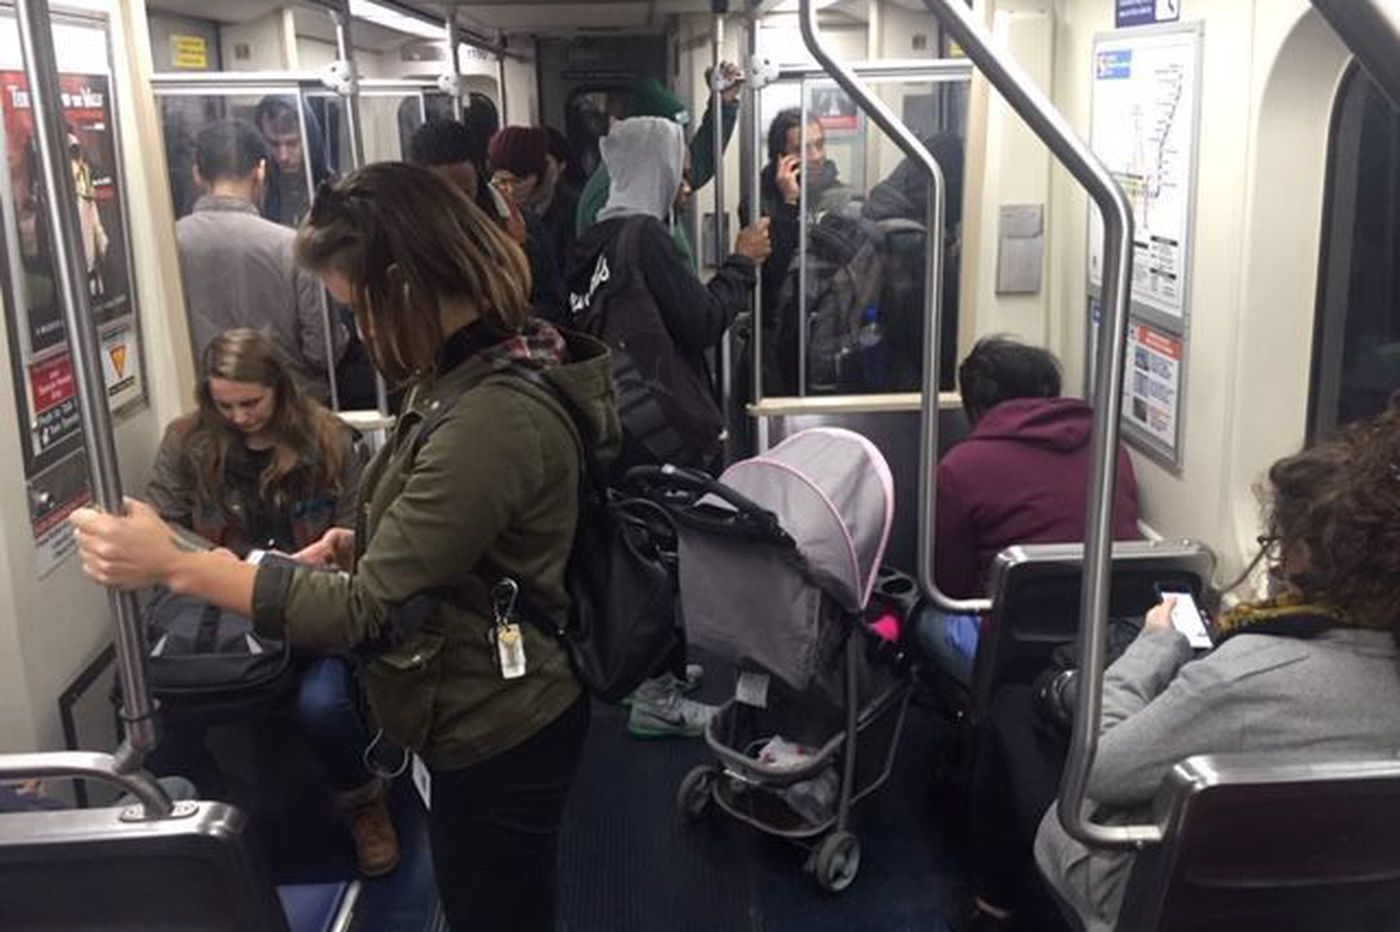 Market-Frankford Line changes may be convenient for SEPTA, but bad for customers | Opinion